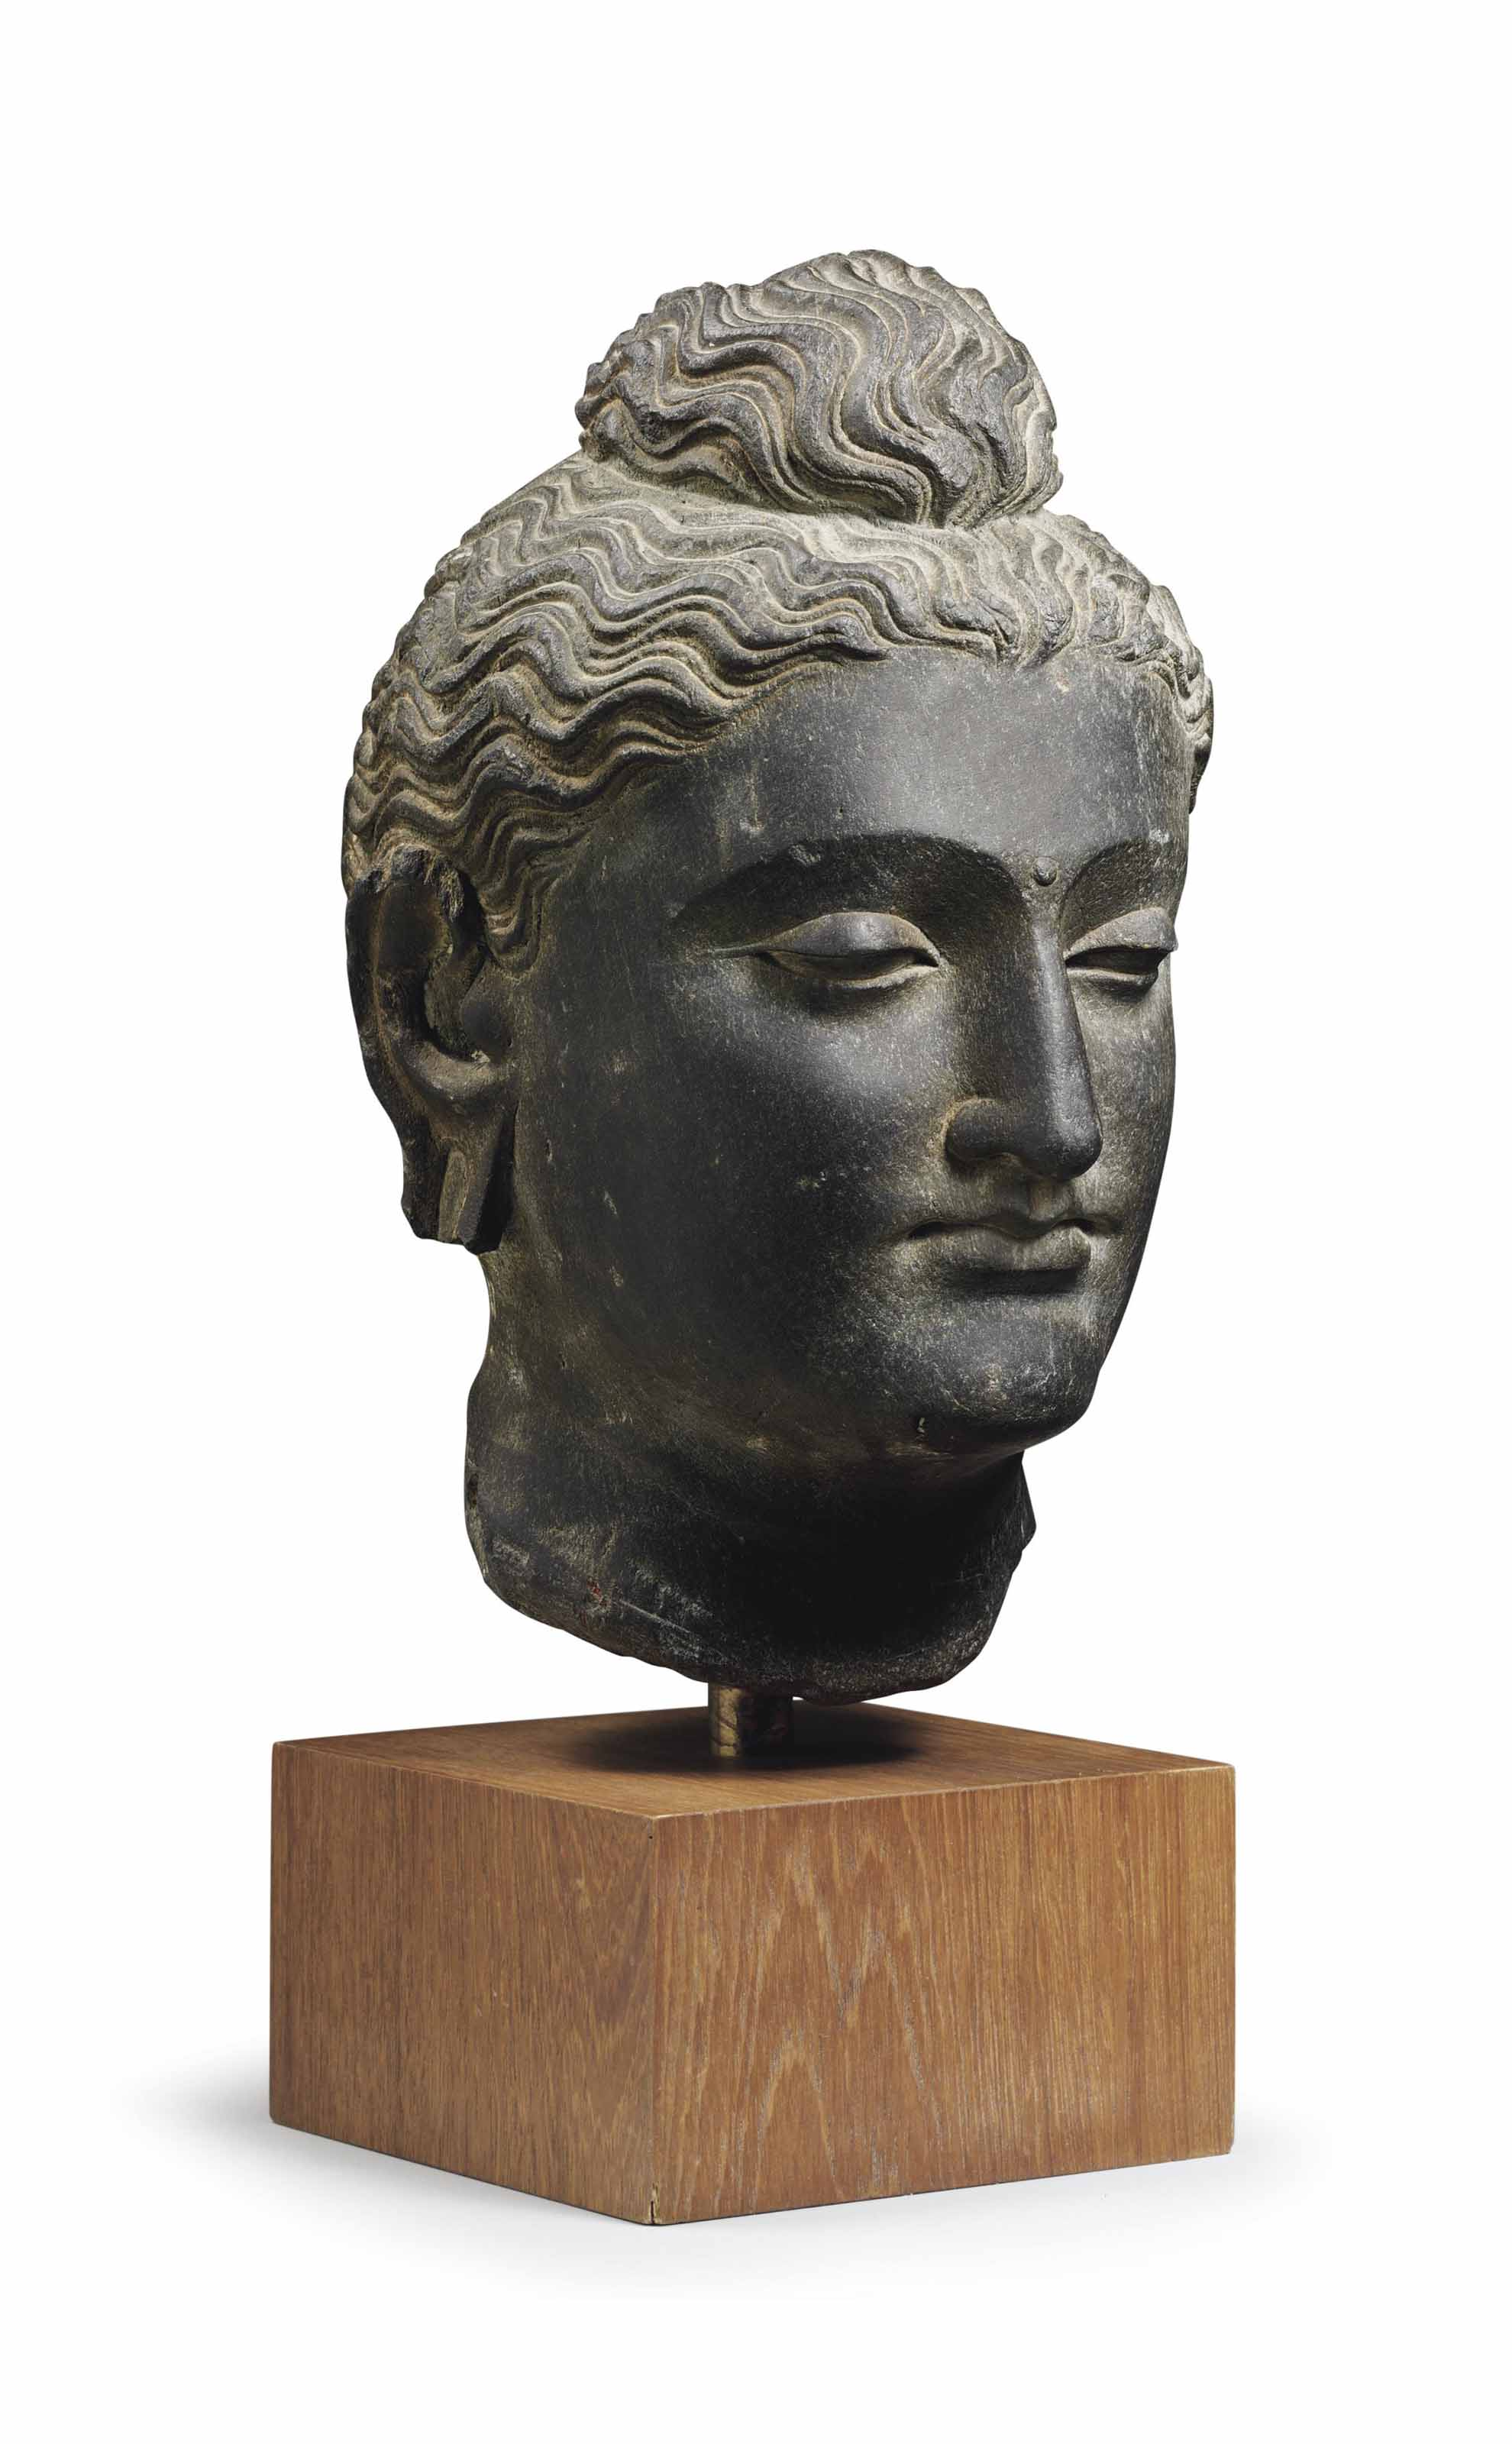 A Gray Schist Head Of Buddha Gandhara 2nd 3rd Century Sculptures Statues Figures Head Christie S